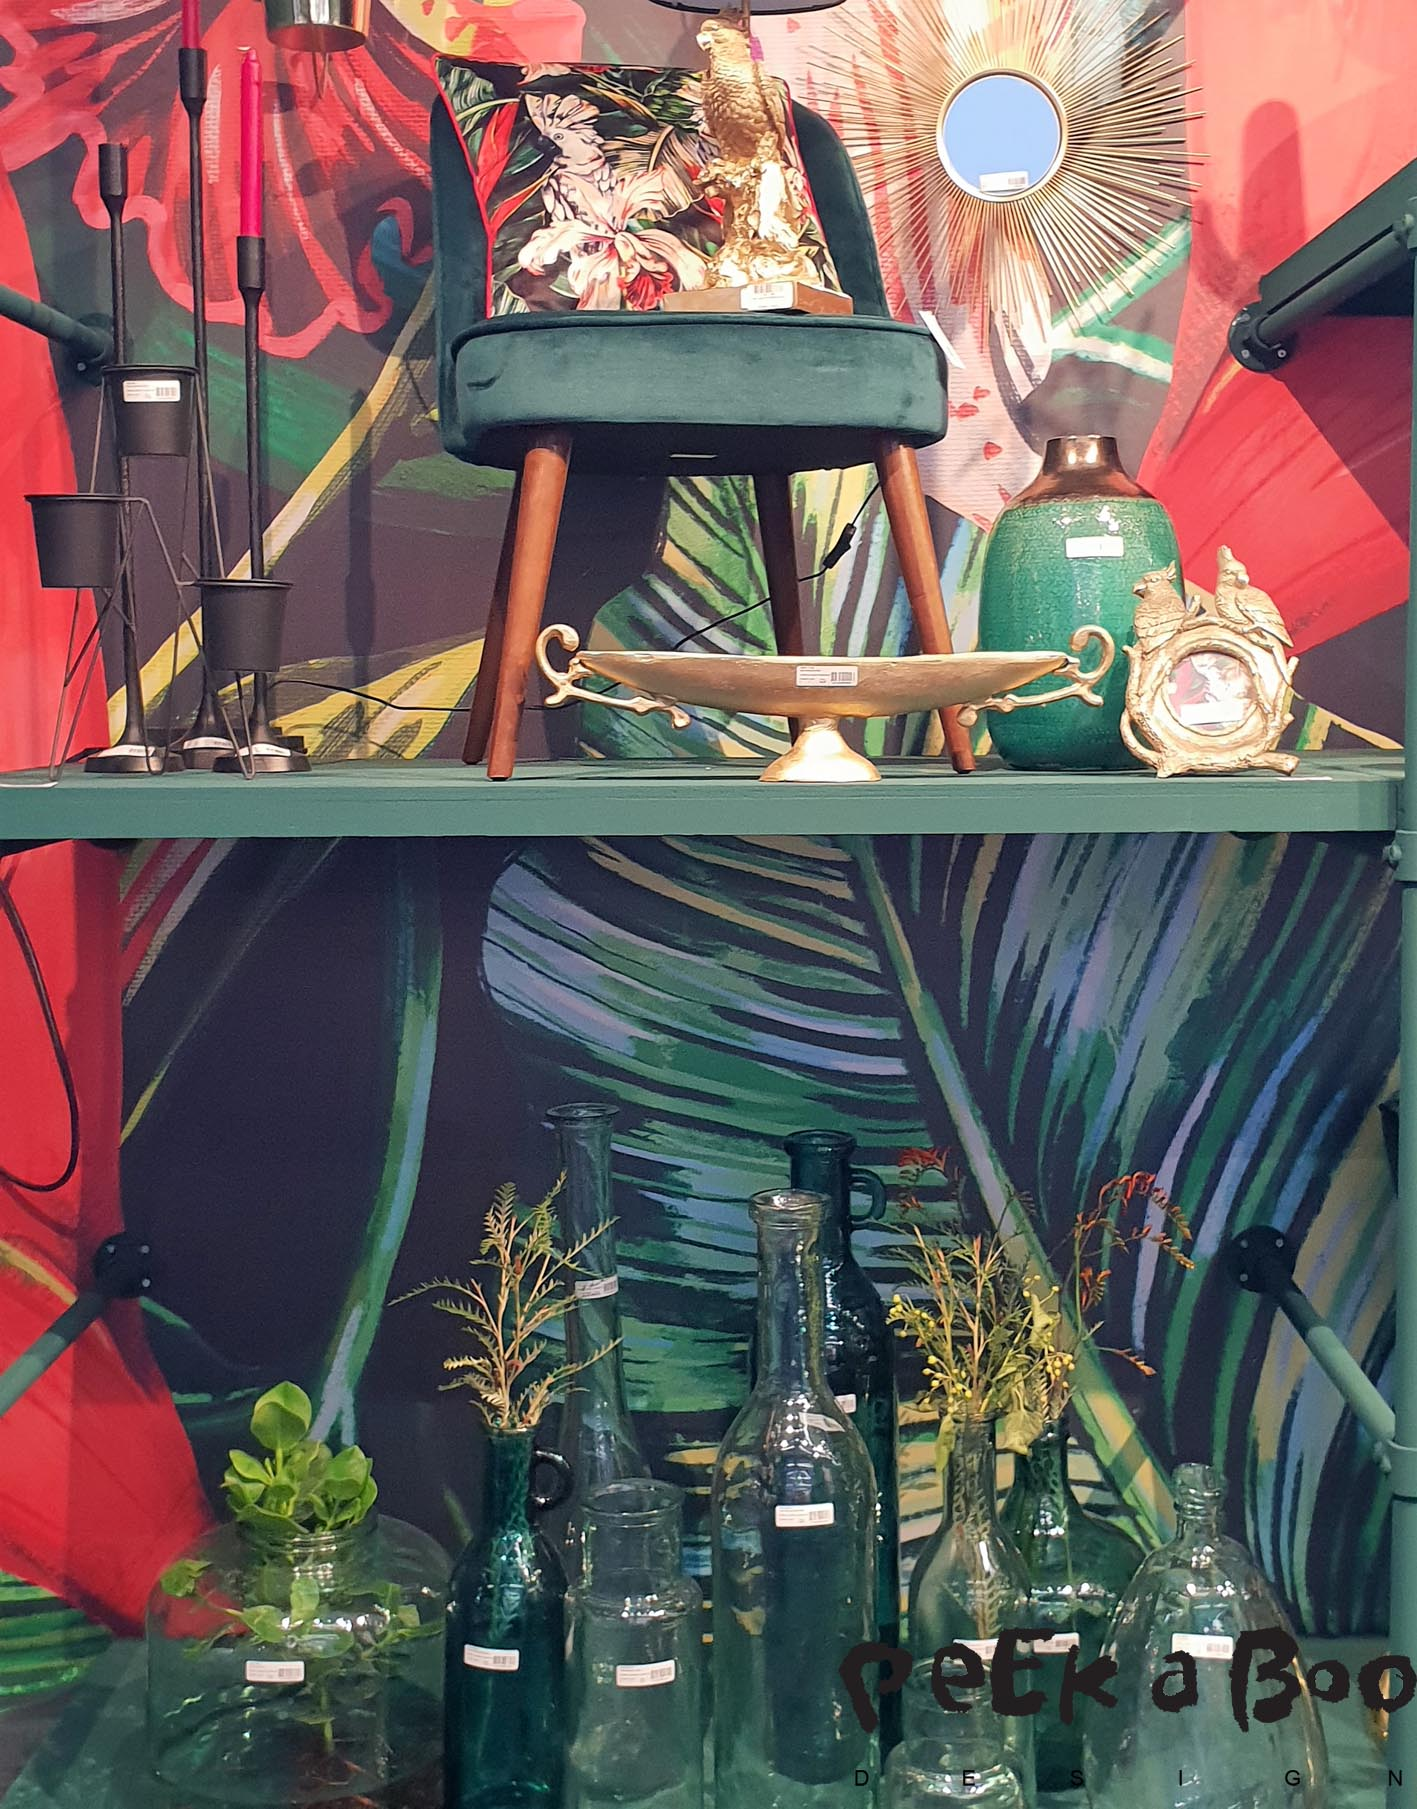 From the Dutsch brand Kerten their interpretation of an Urban oasis, where thwy have mixed the dark green colours with vivid red and warm tones.